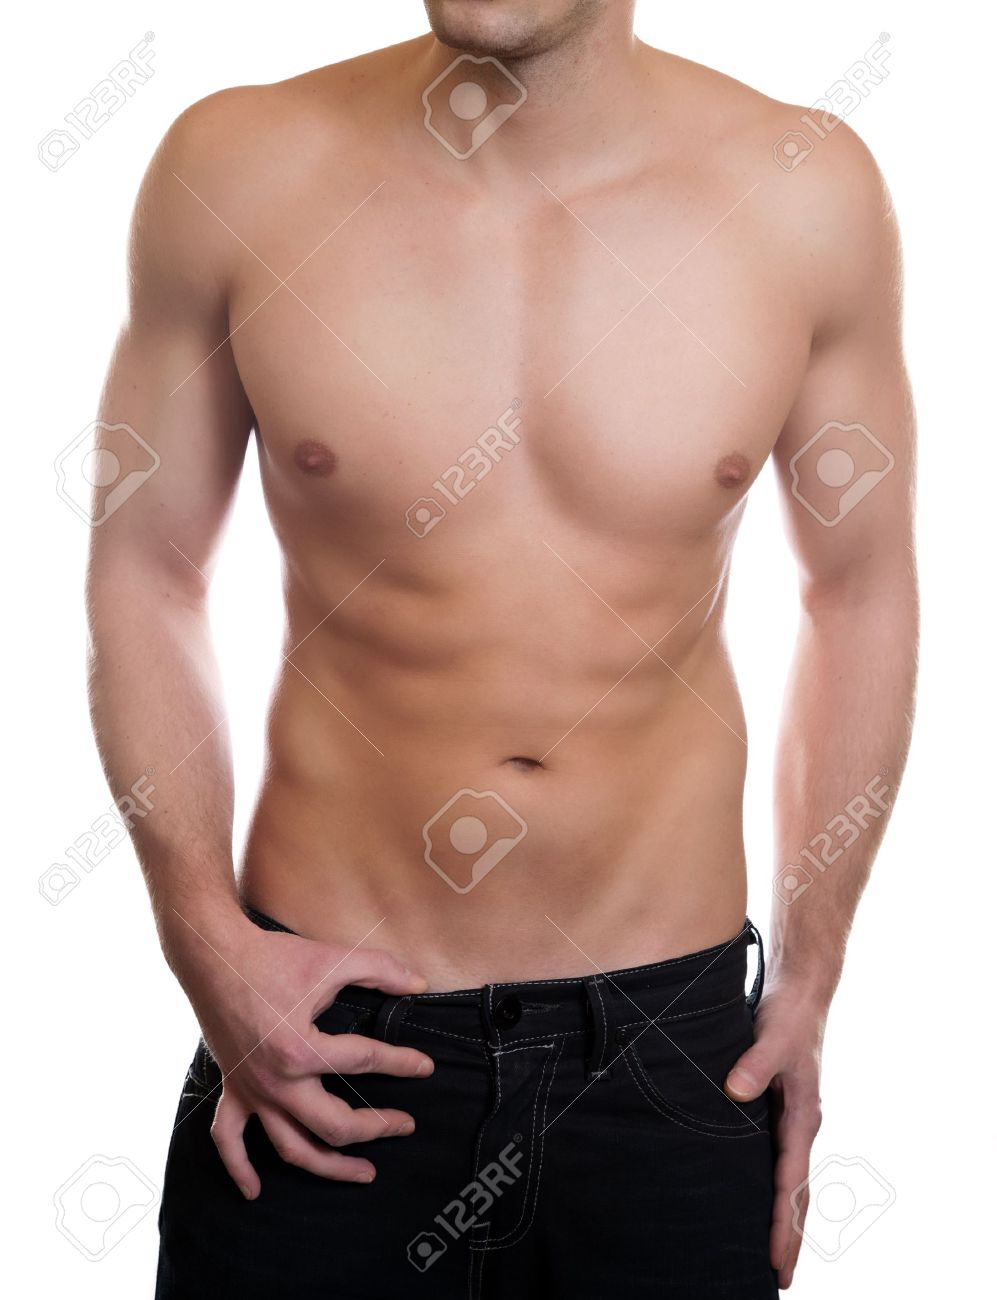 Man With A Toned Muscular Body Stock Photo, Picture And Royalty Free ...